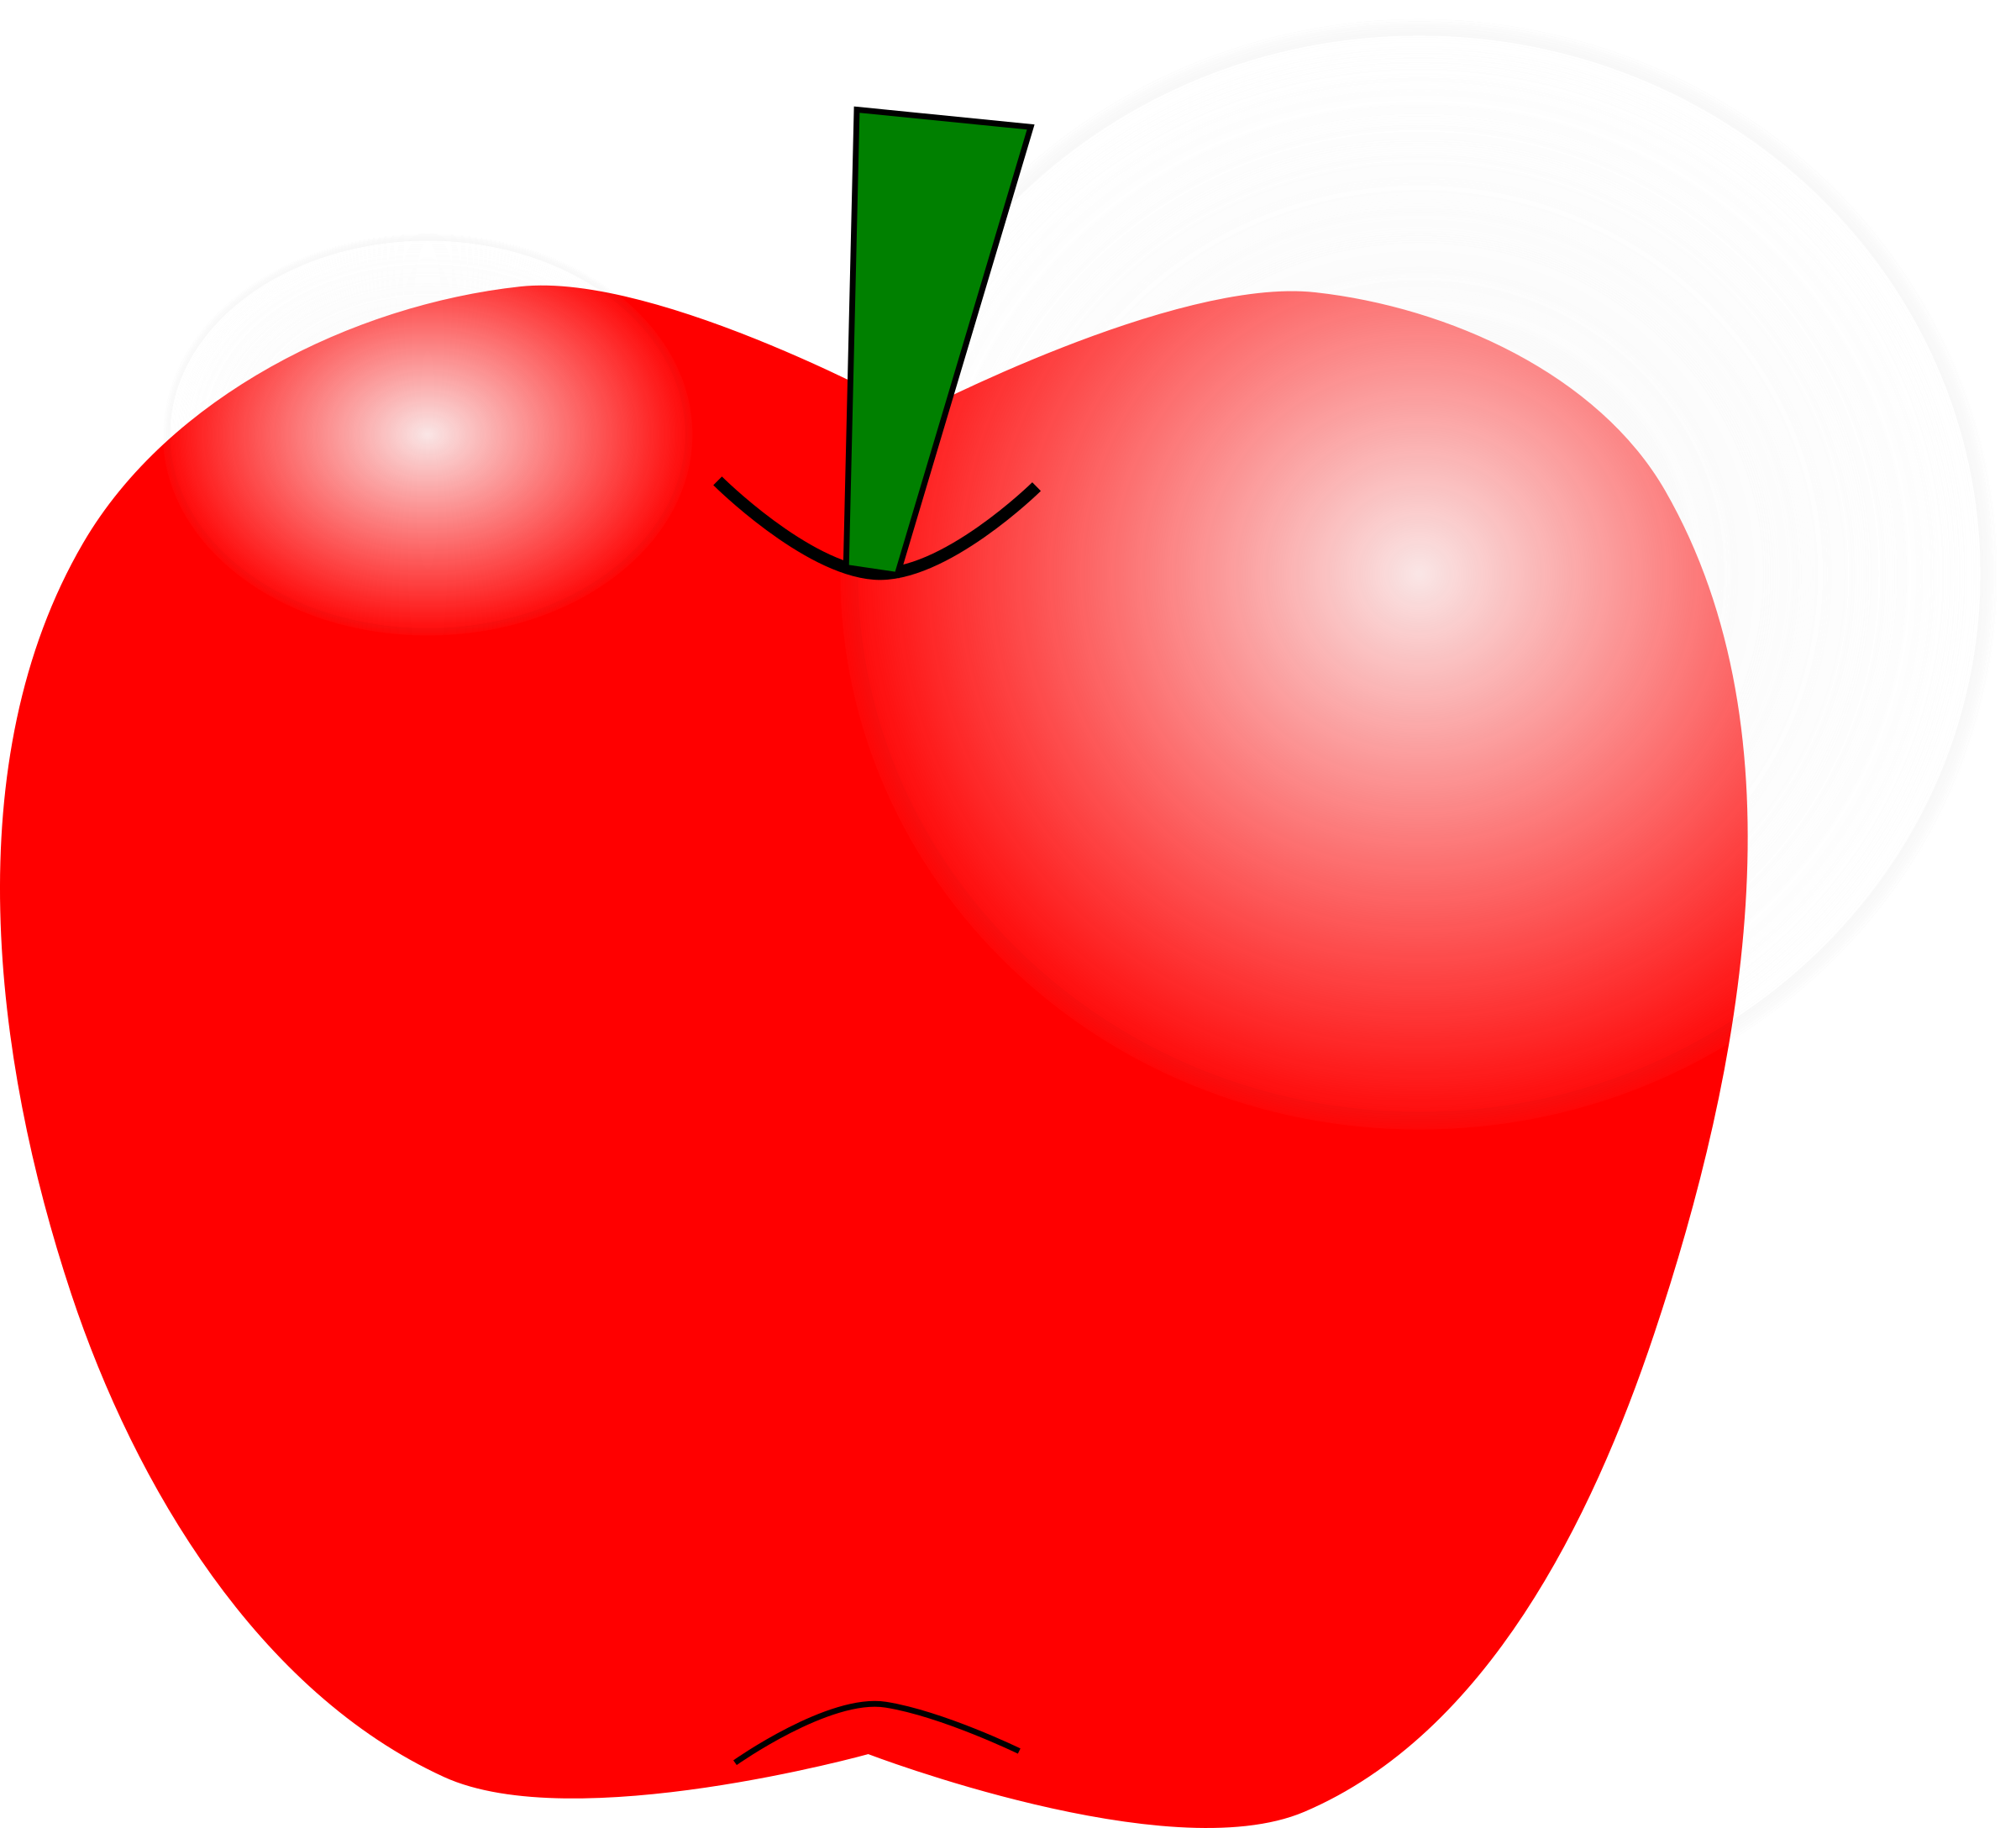 Microsoft office apple clipart graphic library download Clipart - Apple graphic library download